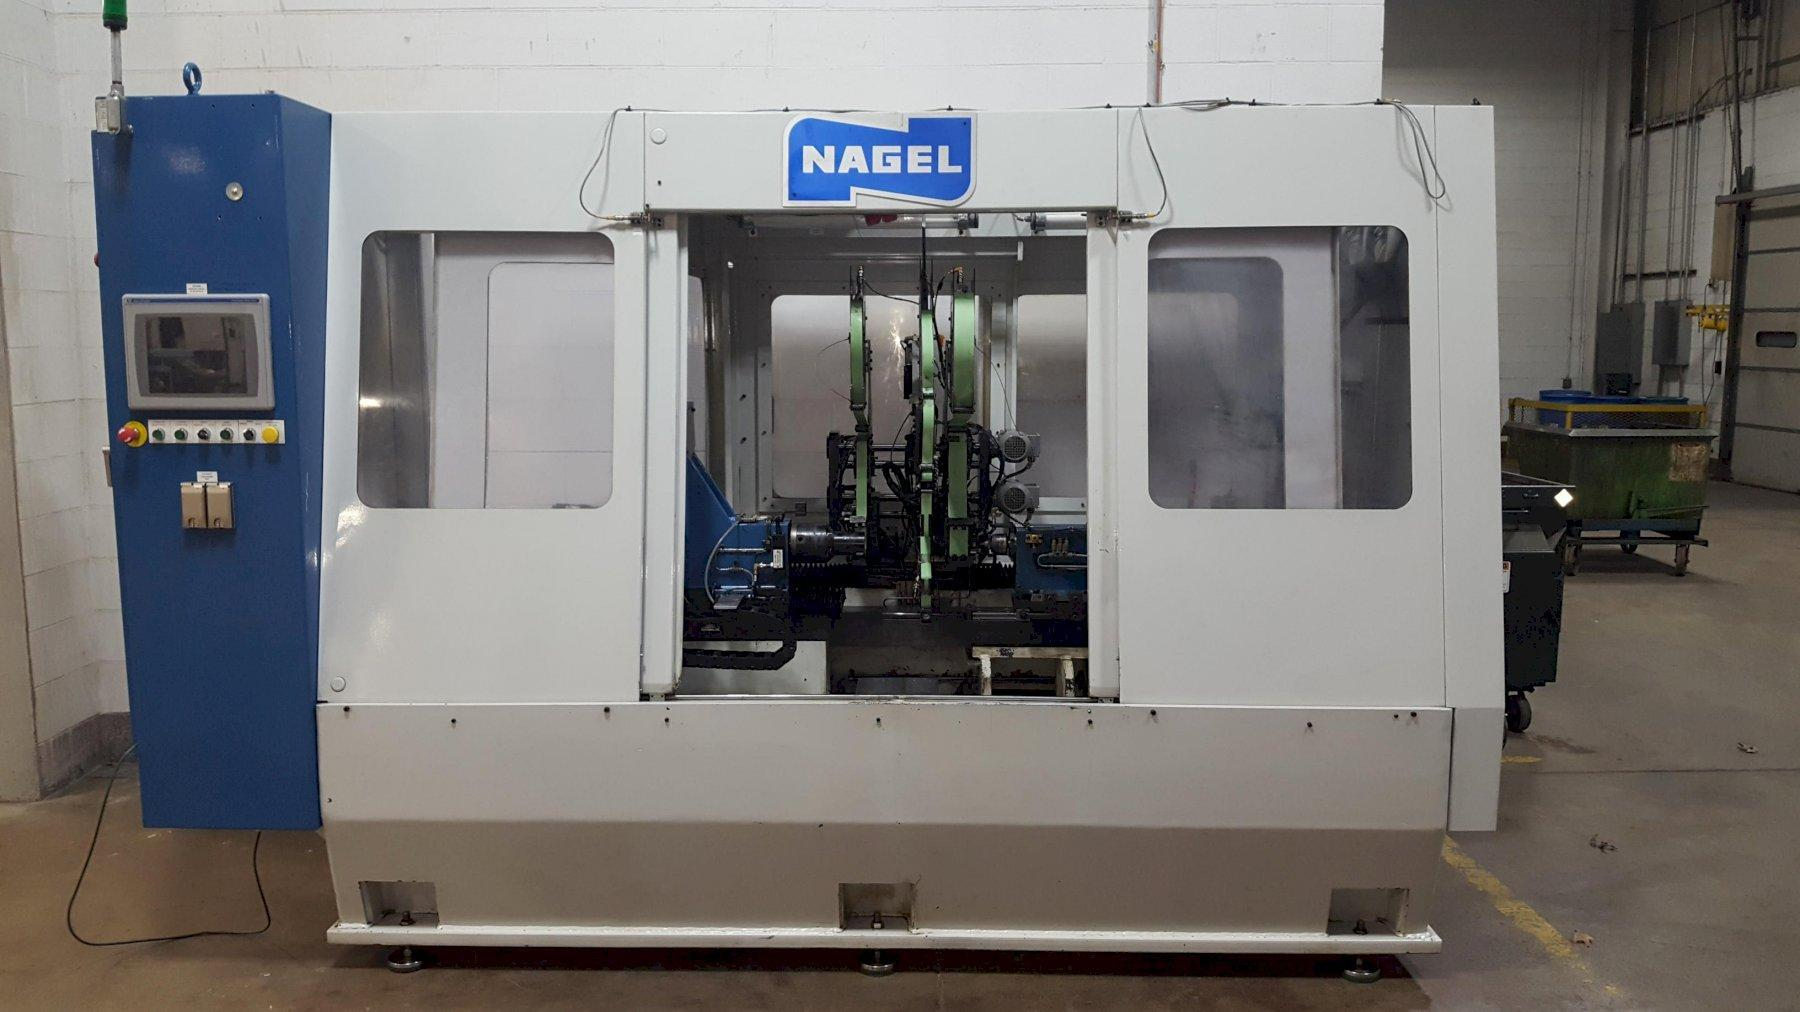 Nagel Model TF4-20 CNC Flexible Crankshaft Lapping/Super Finishing Machine